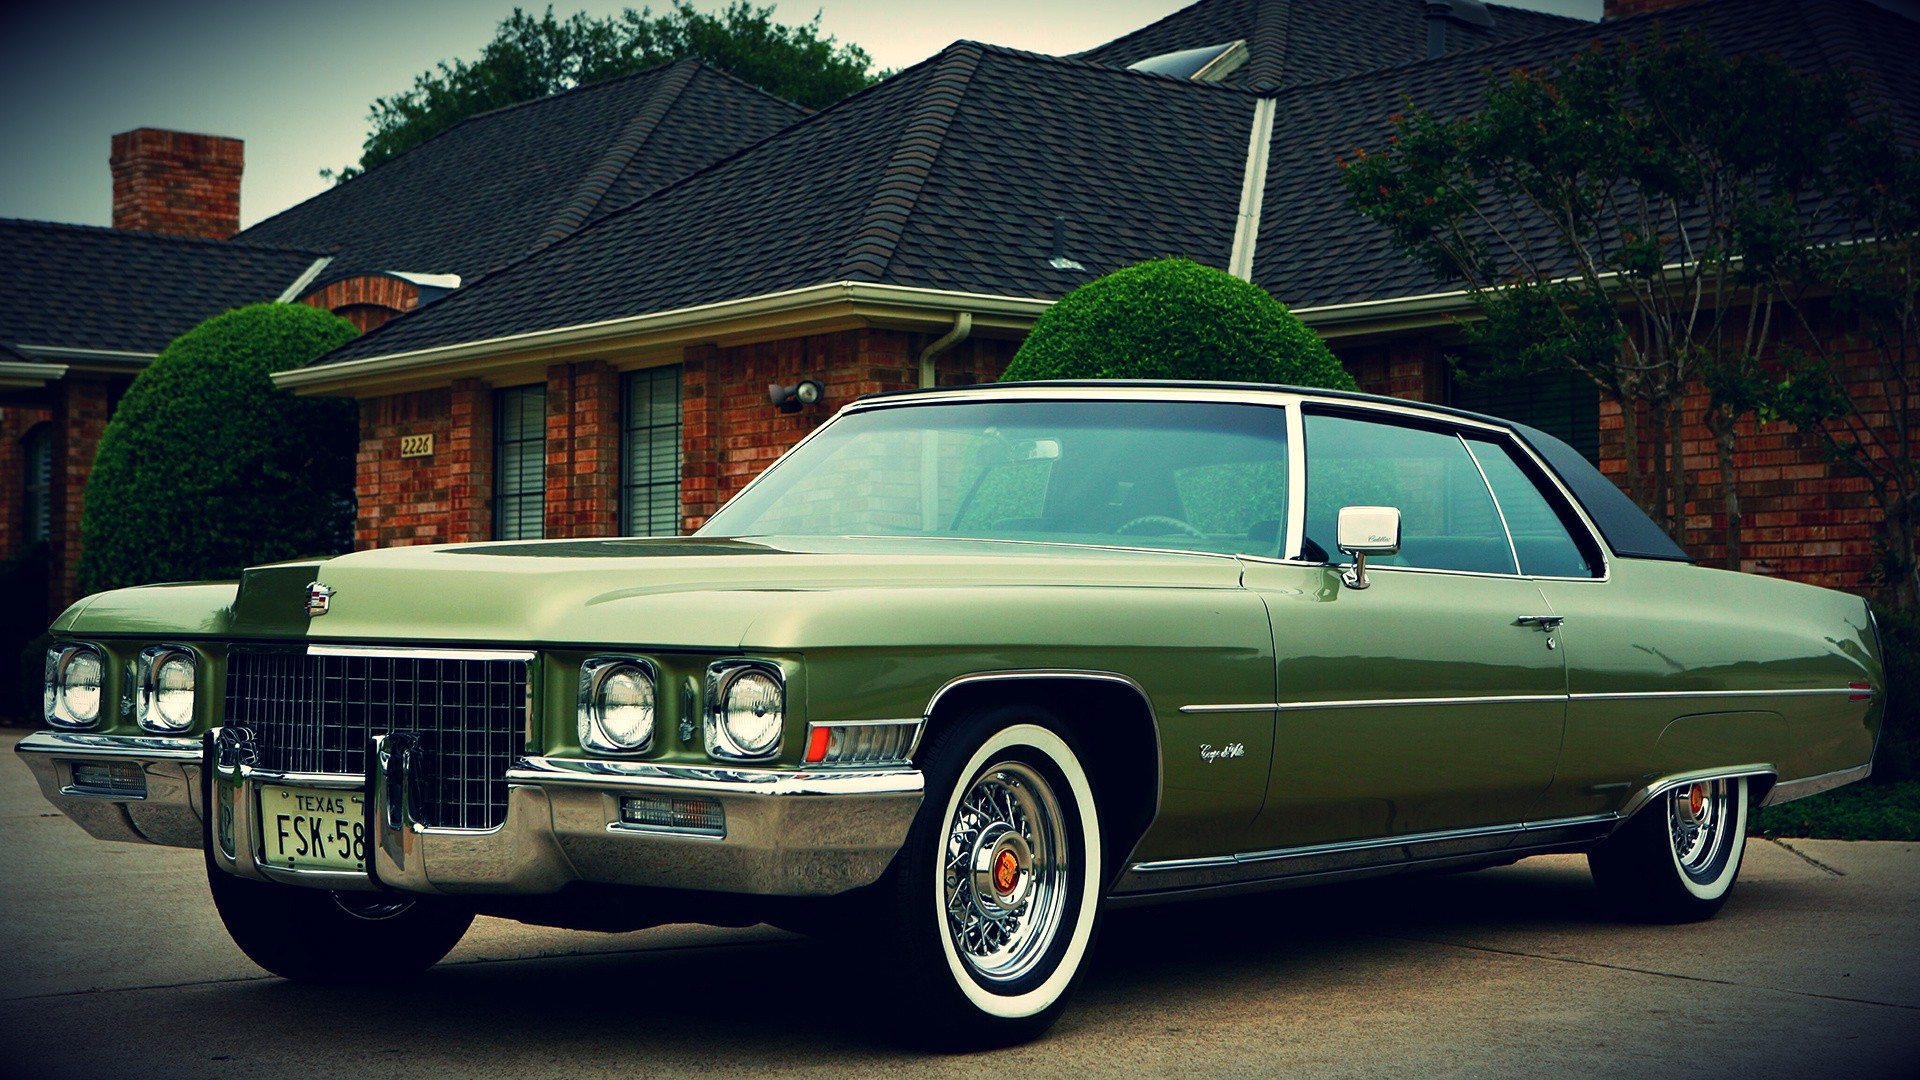 Lowrider Wallpaper Iphone 1971 Cadillac Coupe Deville Full Hd Wallpaper And